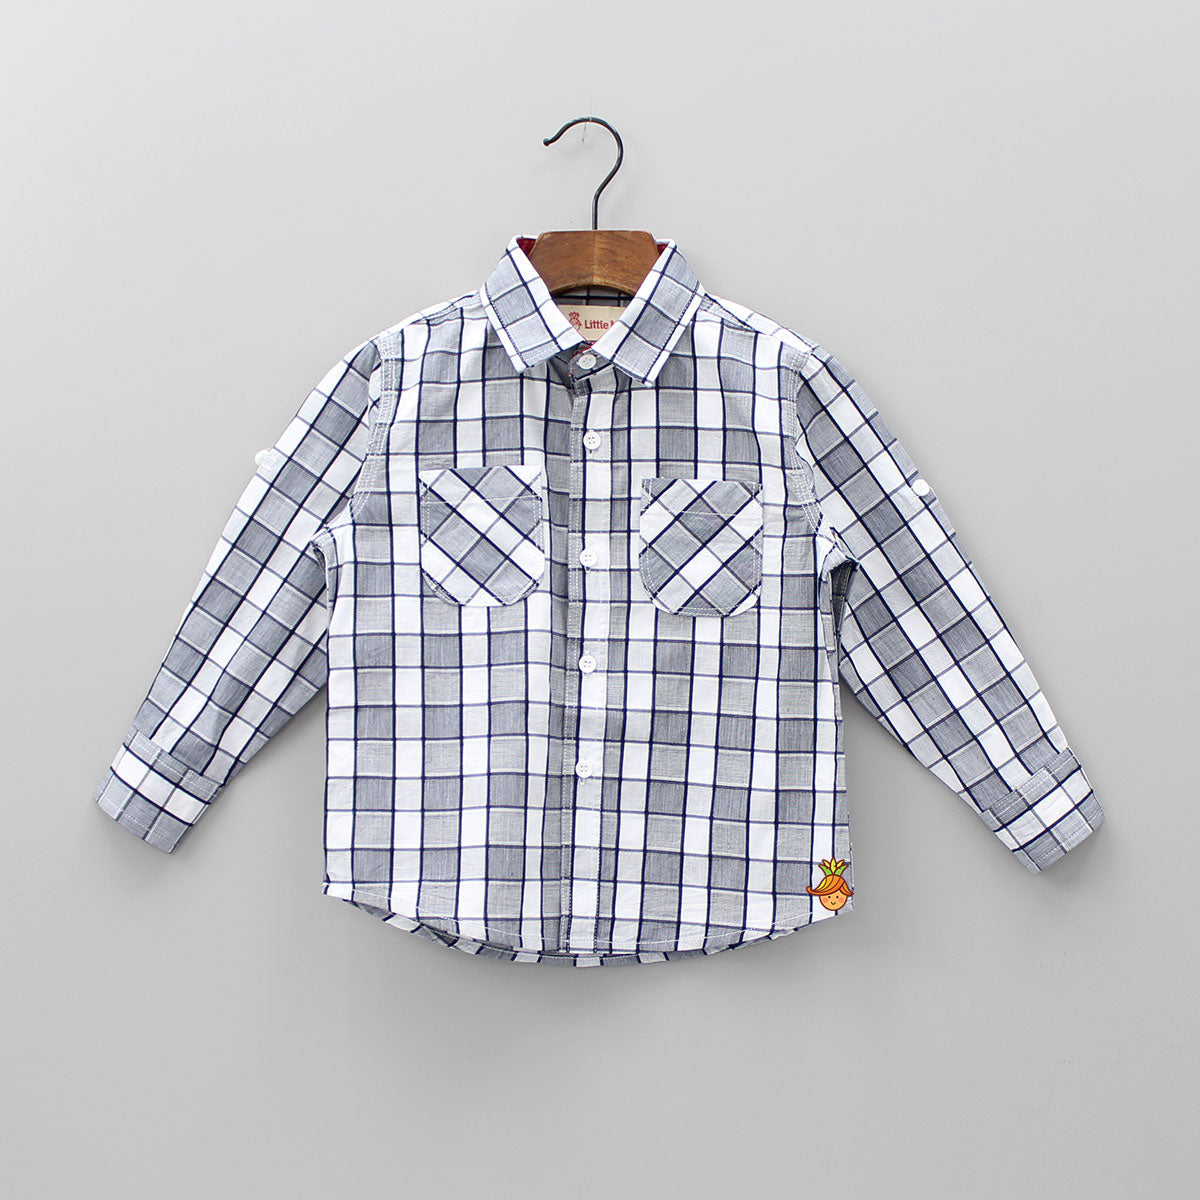 Stylish Grey Checks Shirt